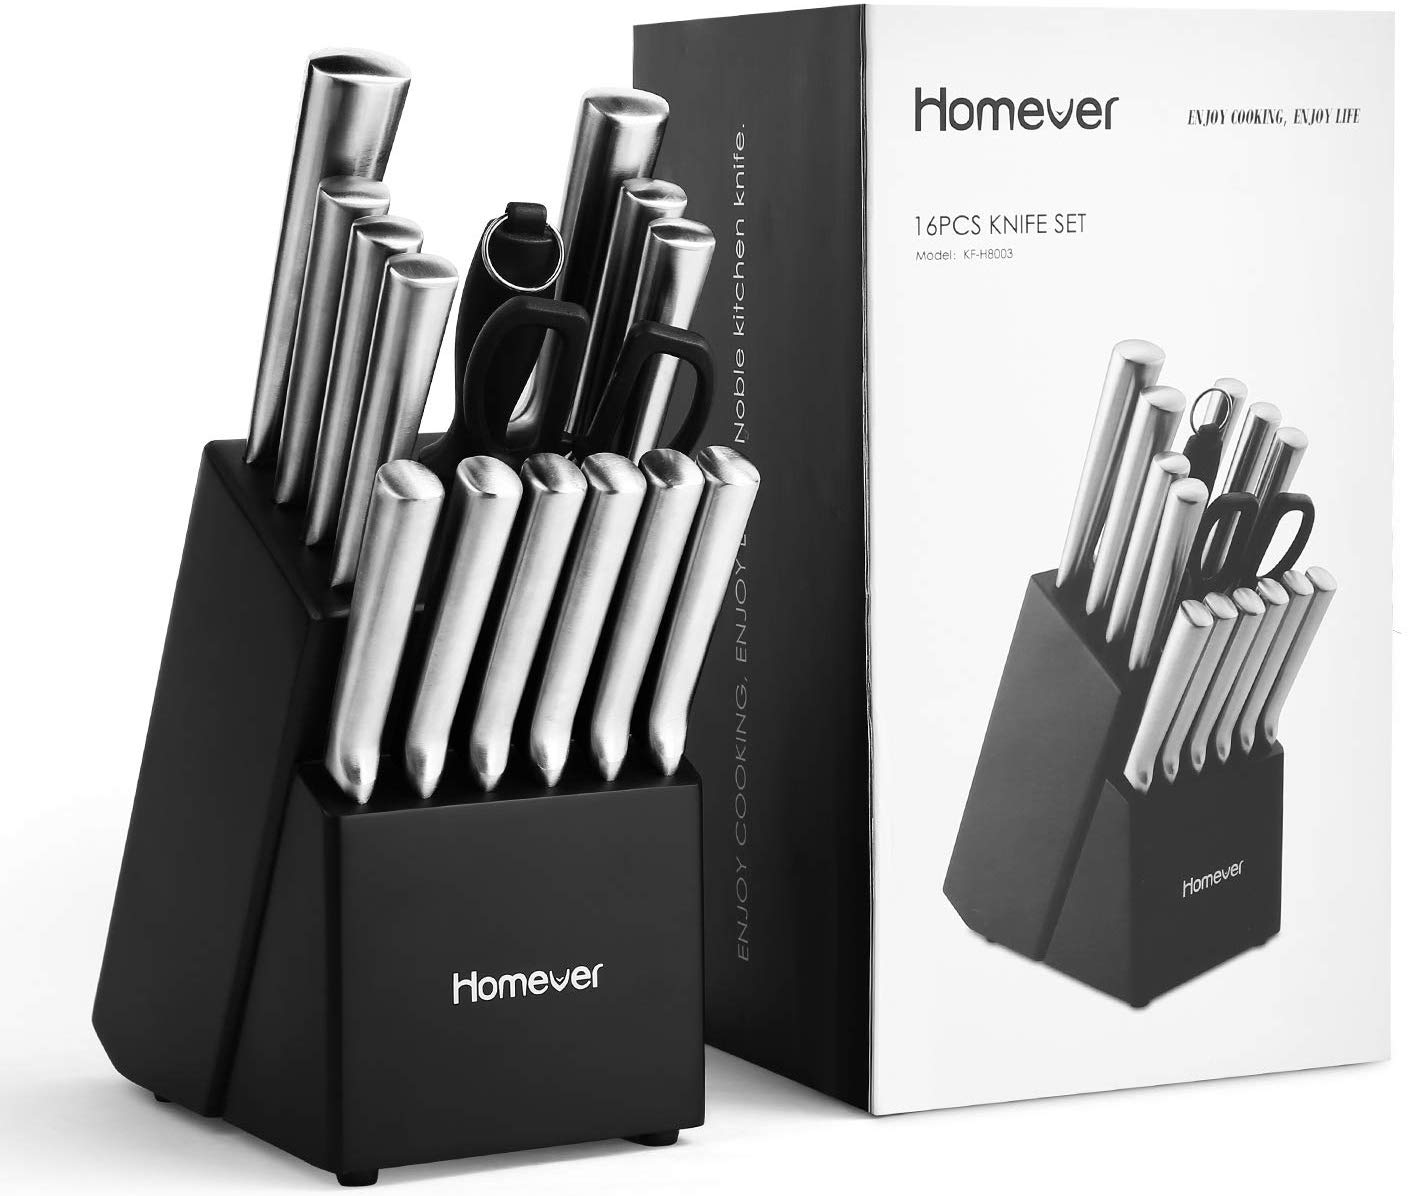 knife set with block, homever 16-piece kitchen knife set